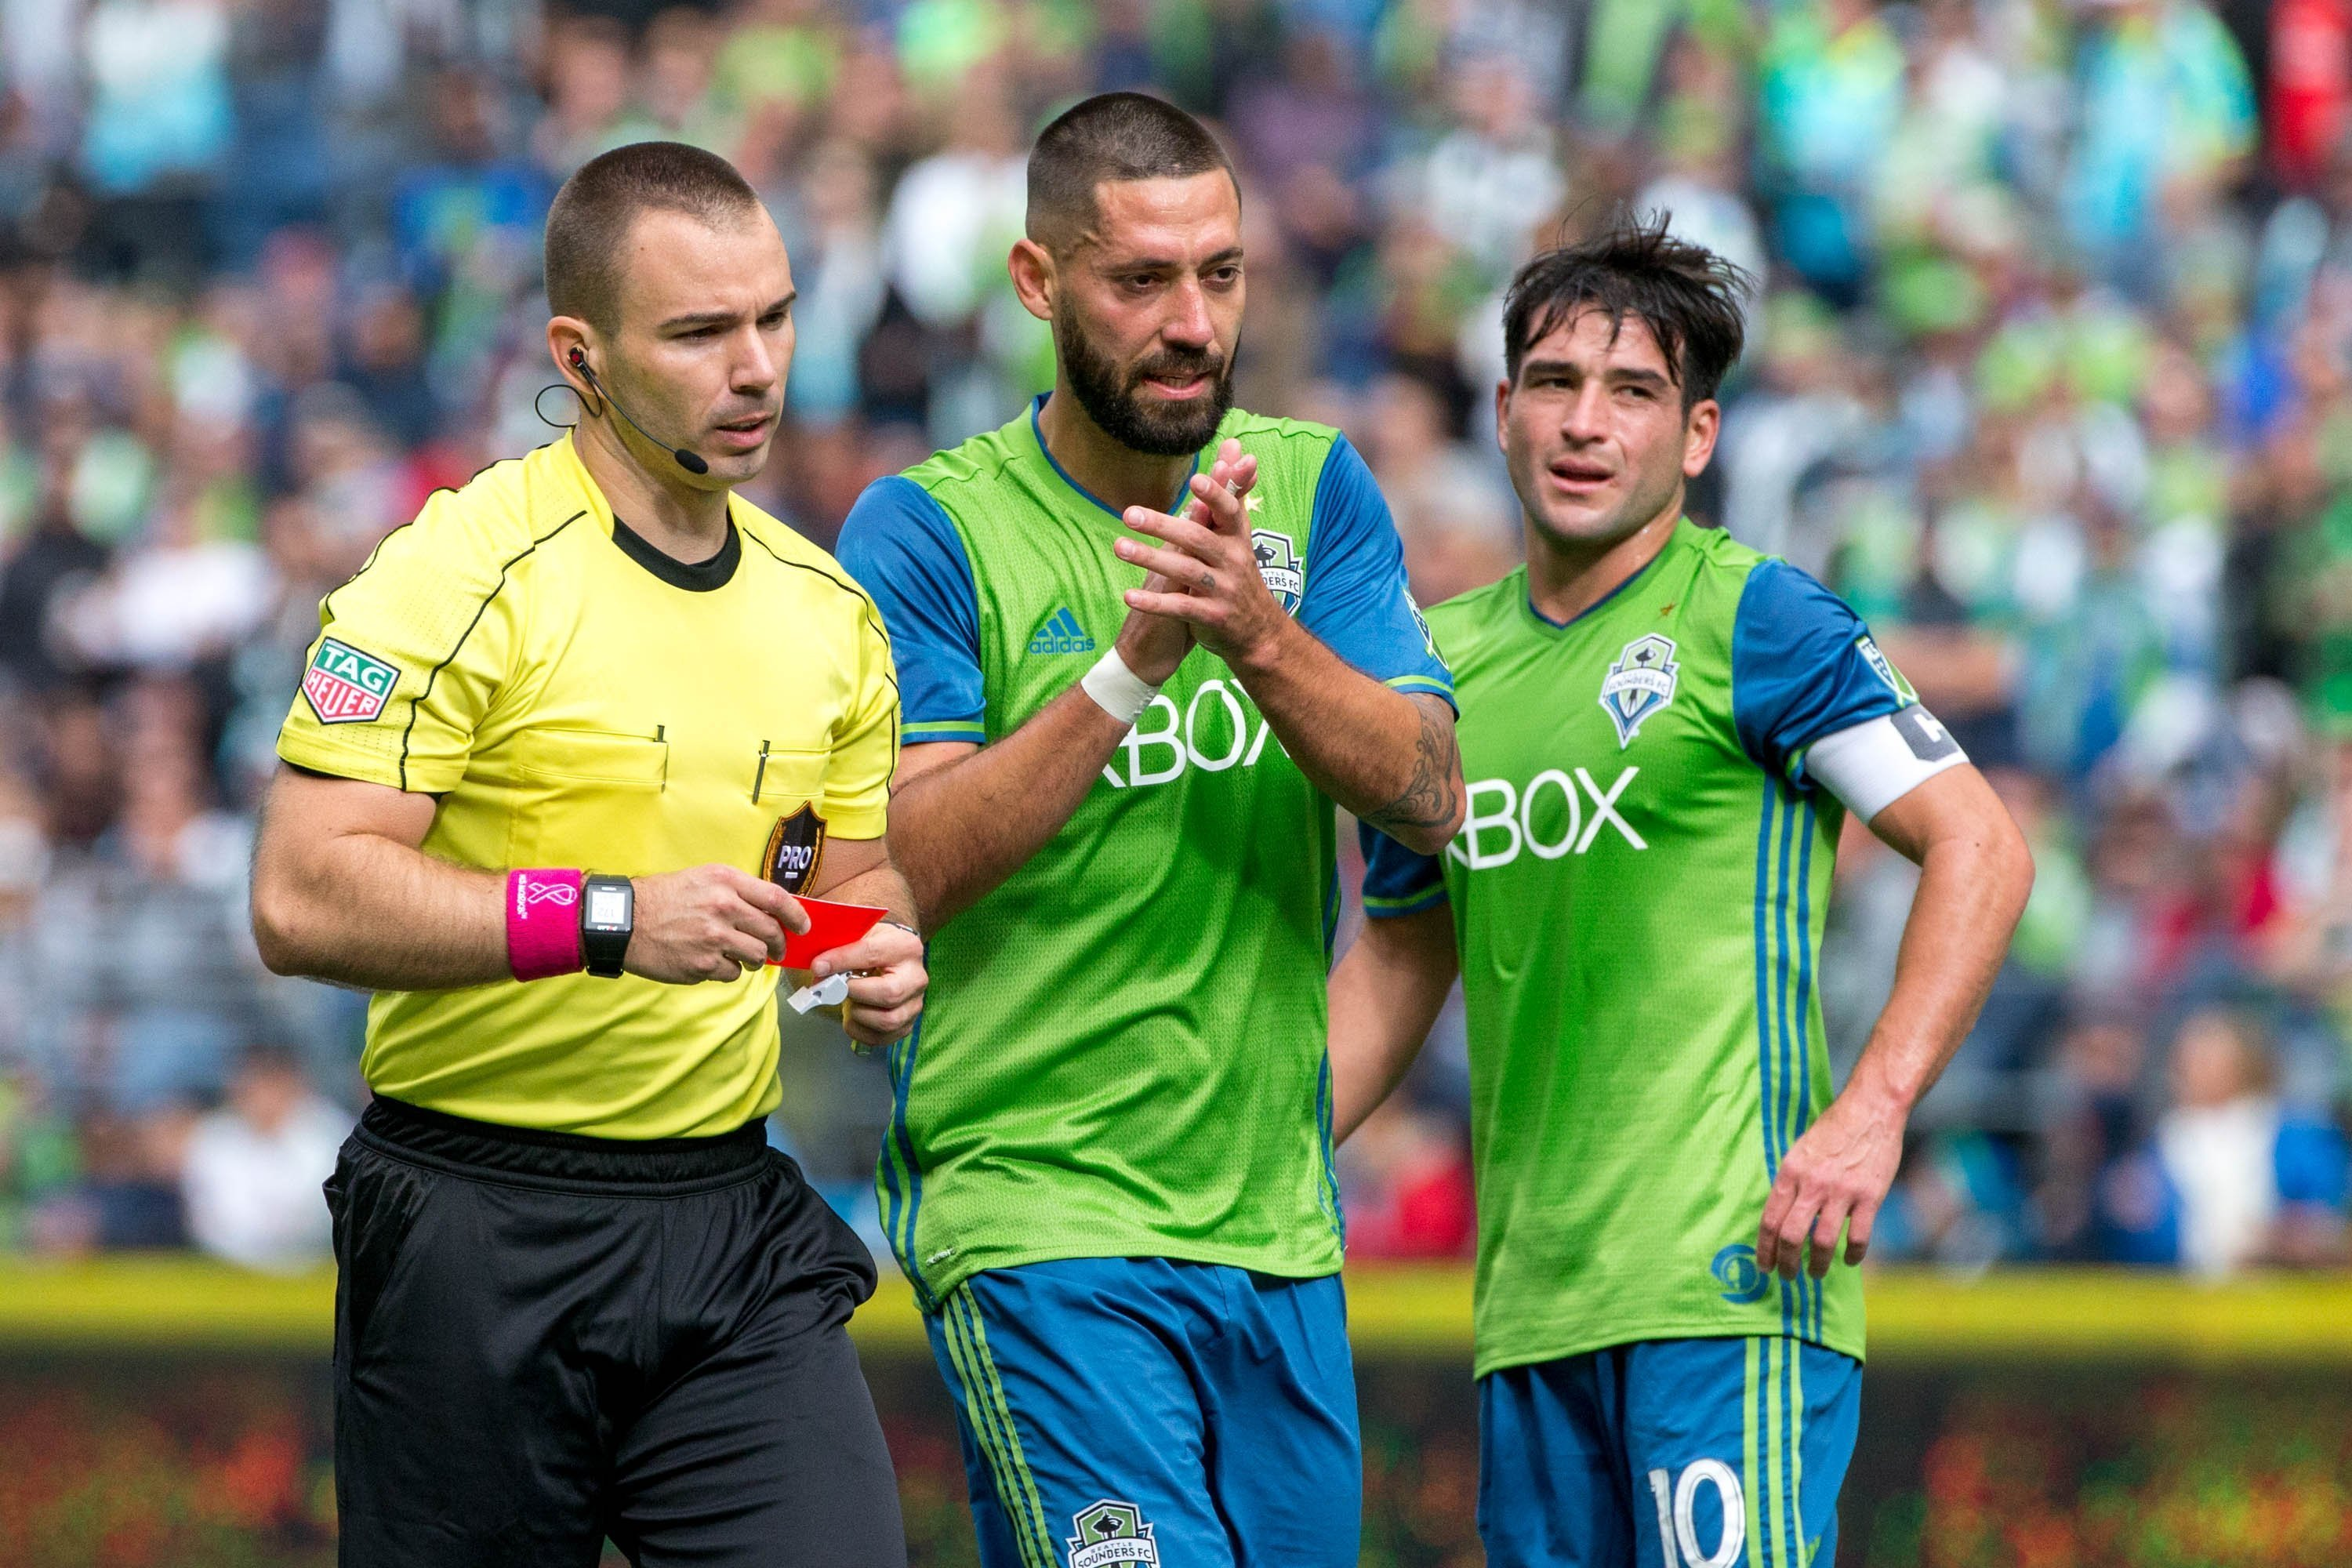 Seattle Sounders midfielder Clint Dempsey (2) walks back with the referee after receiving a red card during the first half of an MLS soccer game against the Colorado Rapids in Seattle on Sunday, Oct. 22, 2017. (Courtney Pedroza/The Seattle Times via AP)